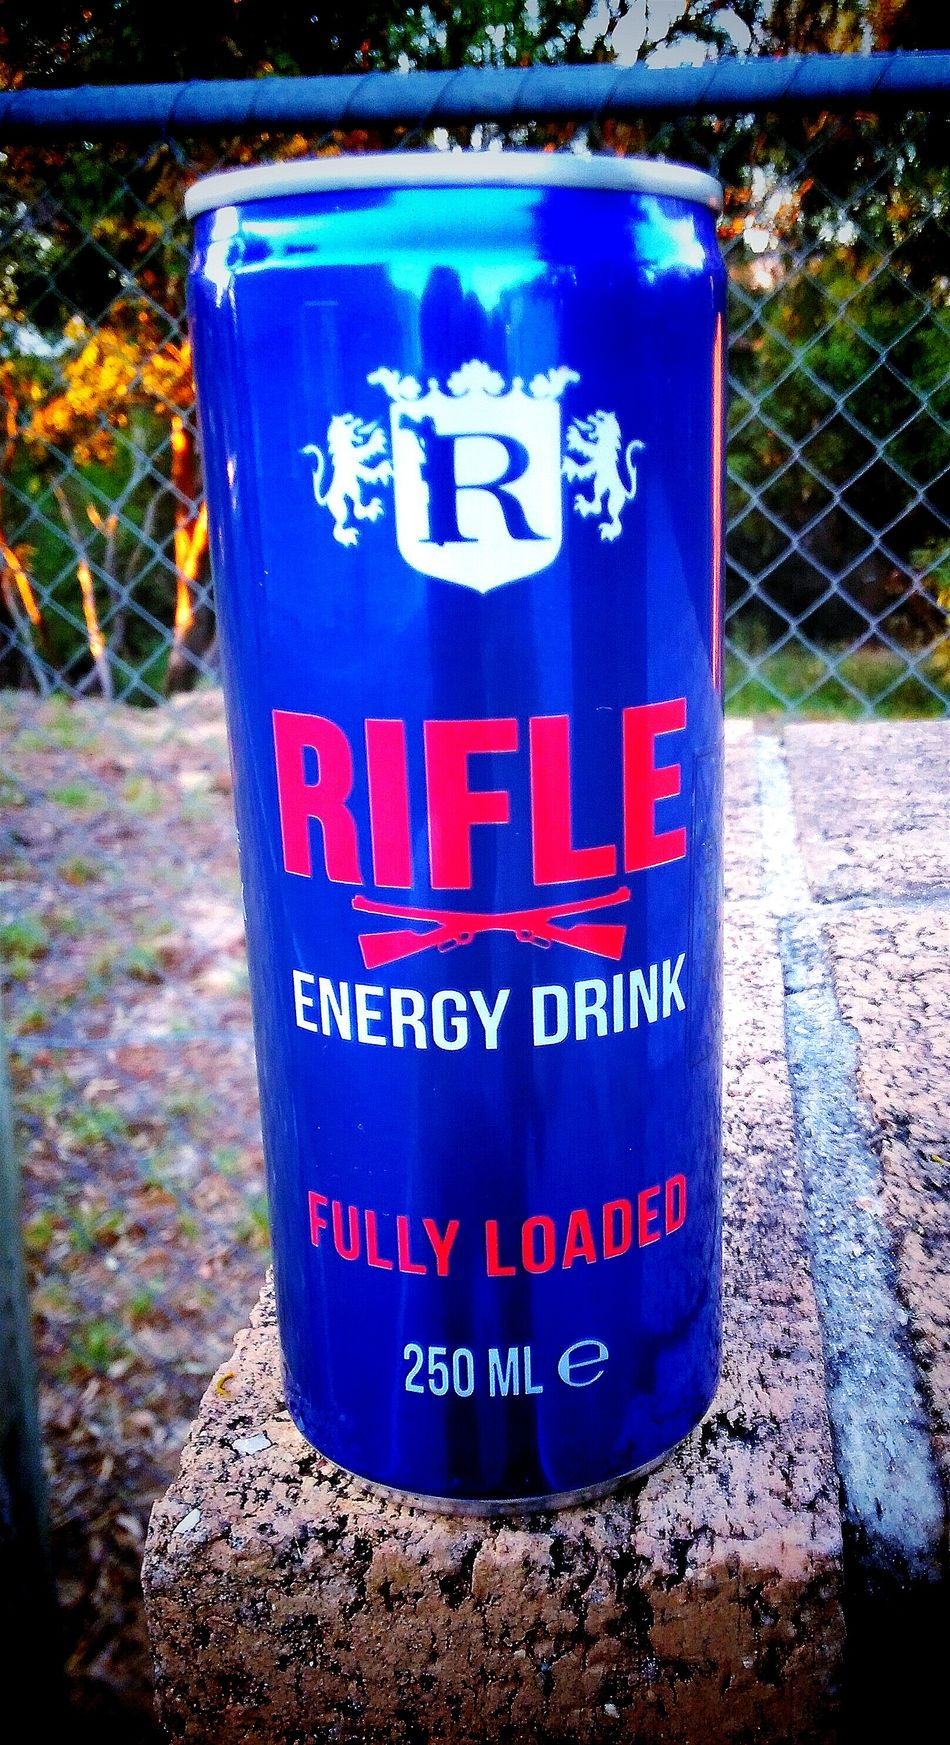 Energydrink Fully Loaded Rifle Cans